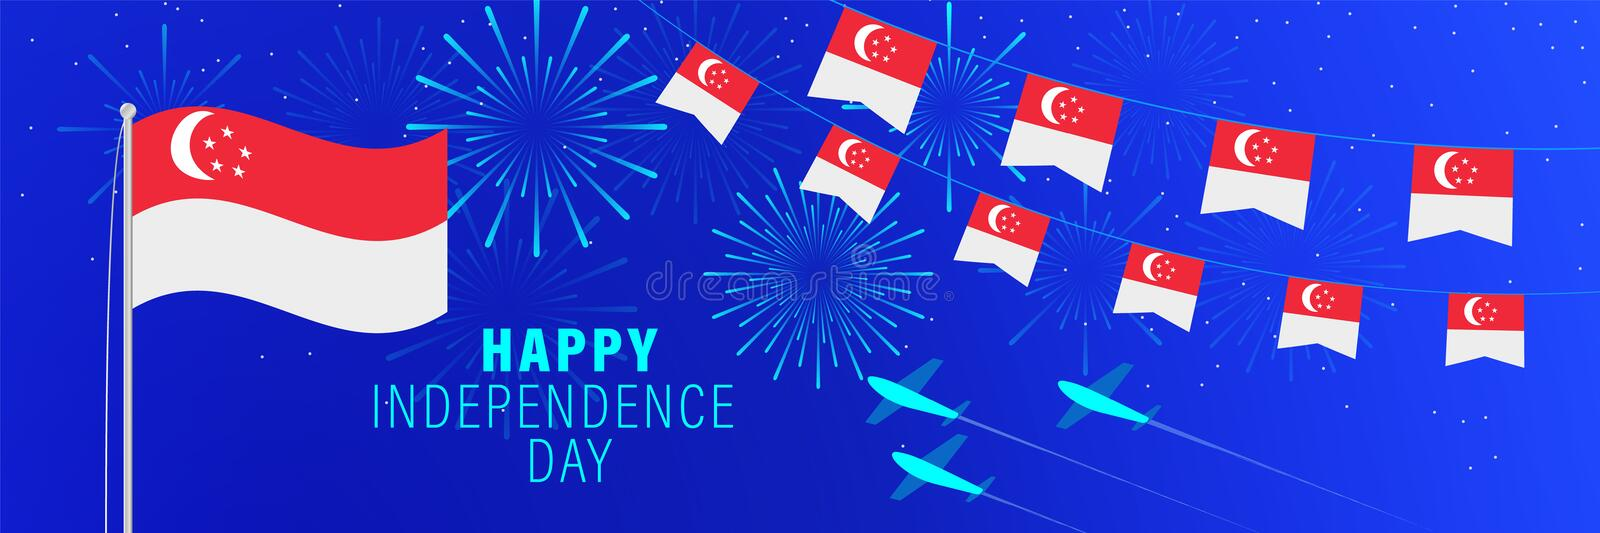 August 9 Singapore Independence Day greeting card. Celebration background with fireworks, flags, flagpole and text stock illustration